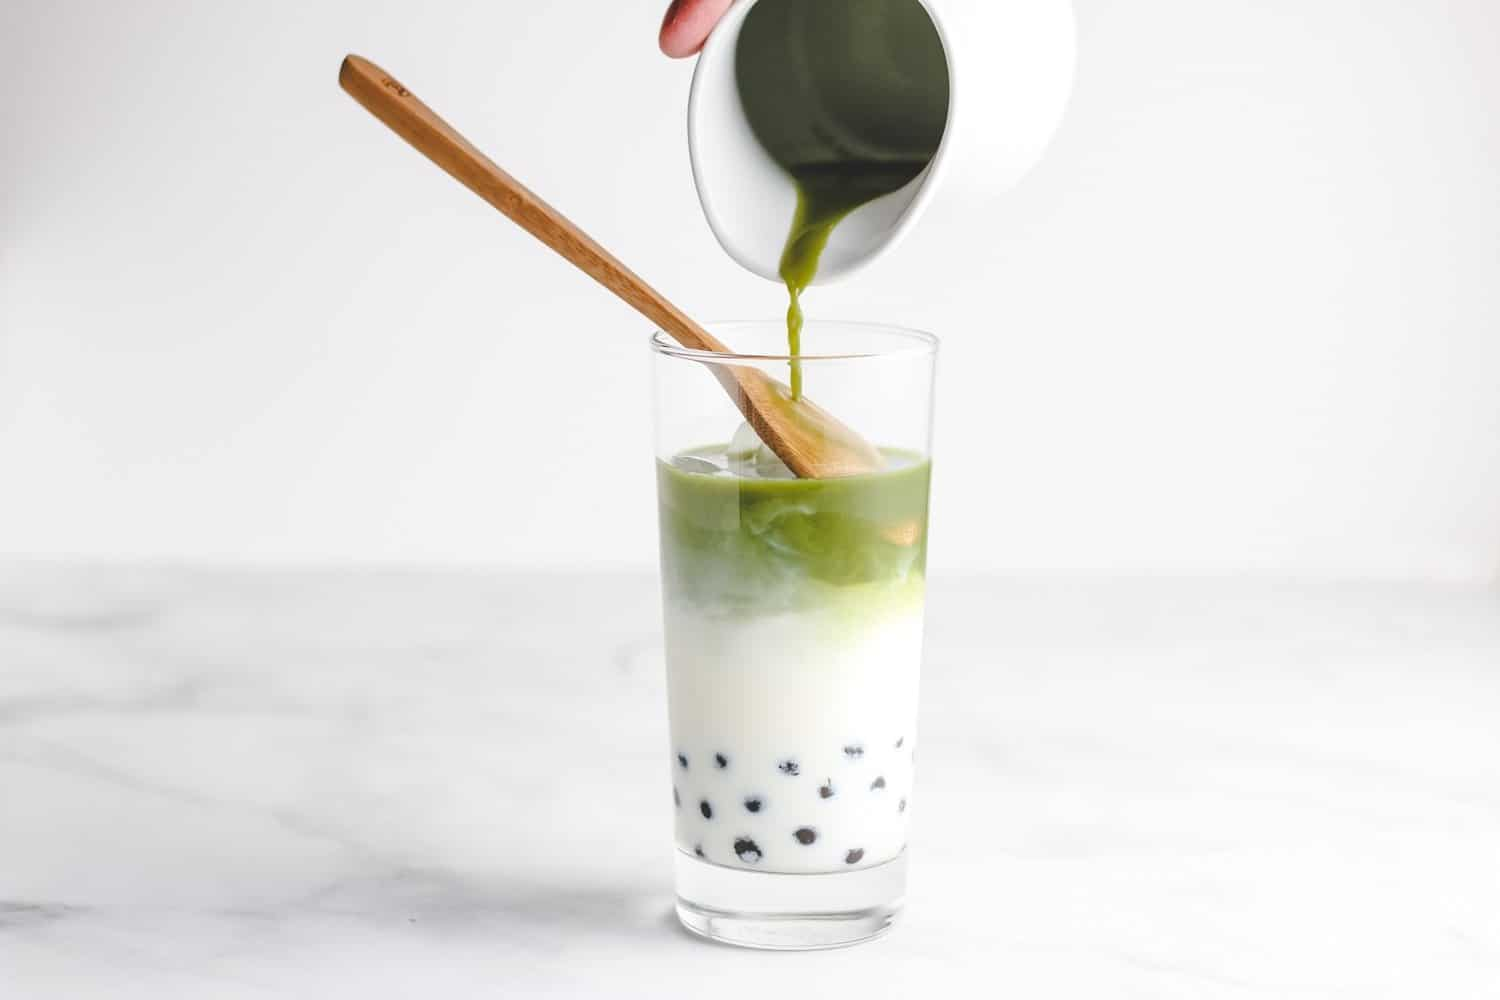 pour matcha tea layer over boba milk bubbles